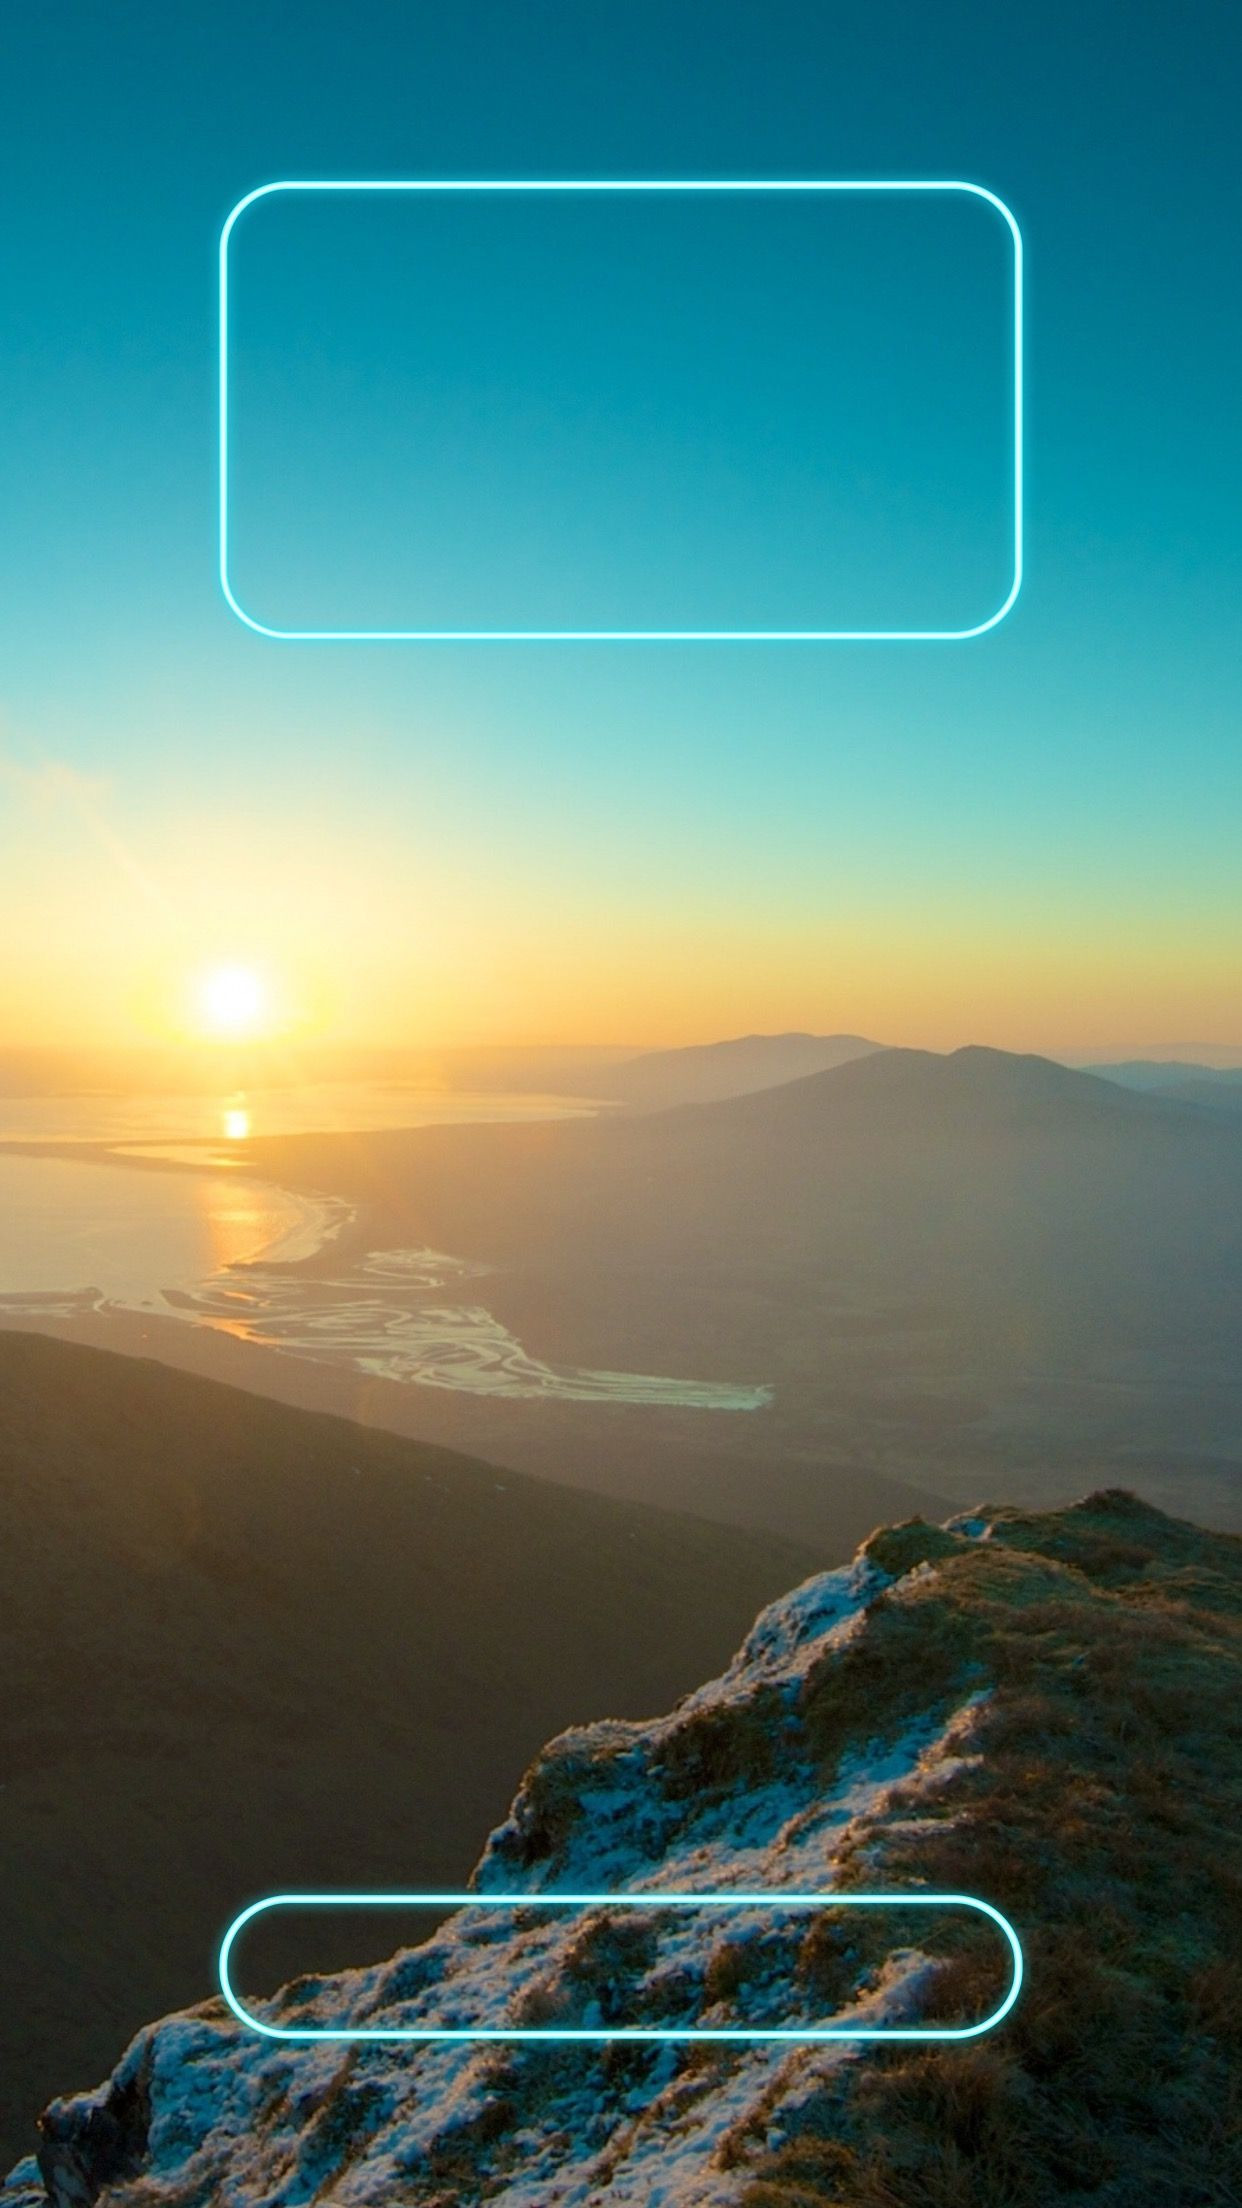 15 Wallpapers with Nature Views for the iPhone 6 Plus   Phone wallpapers   Lock screen wallpaper ...